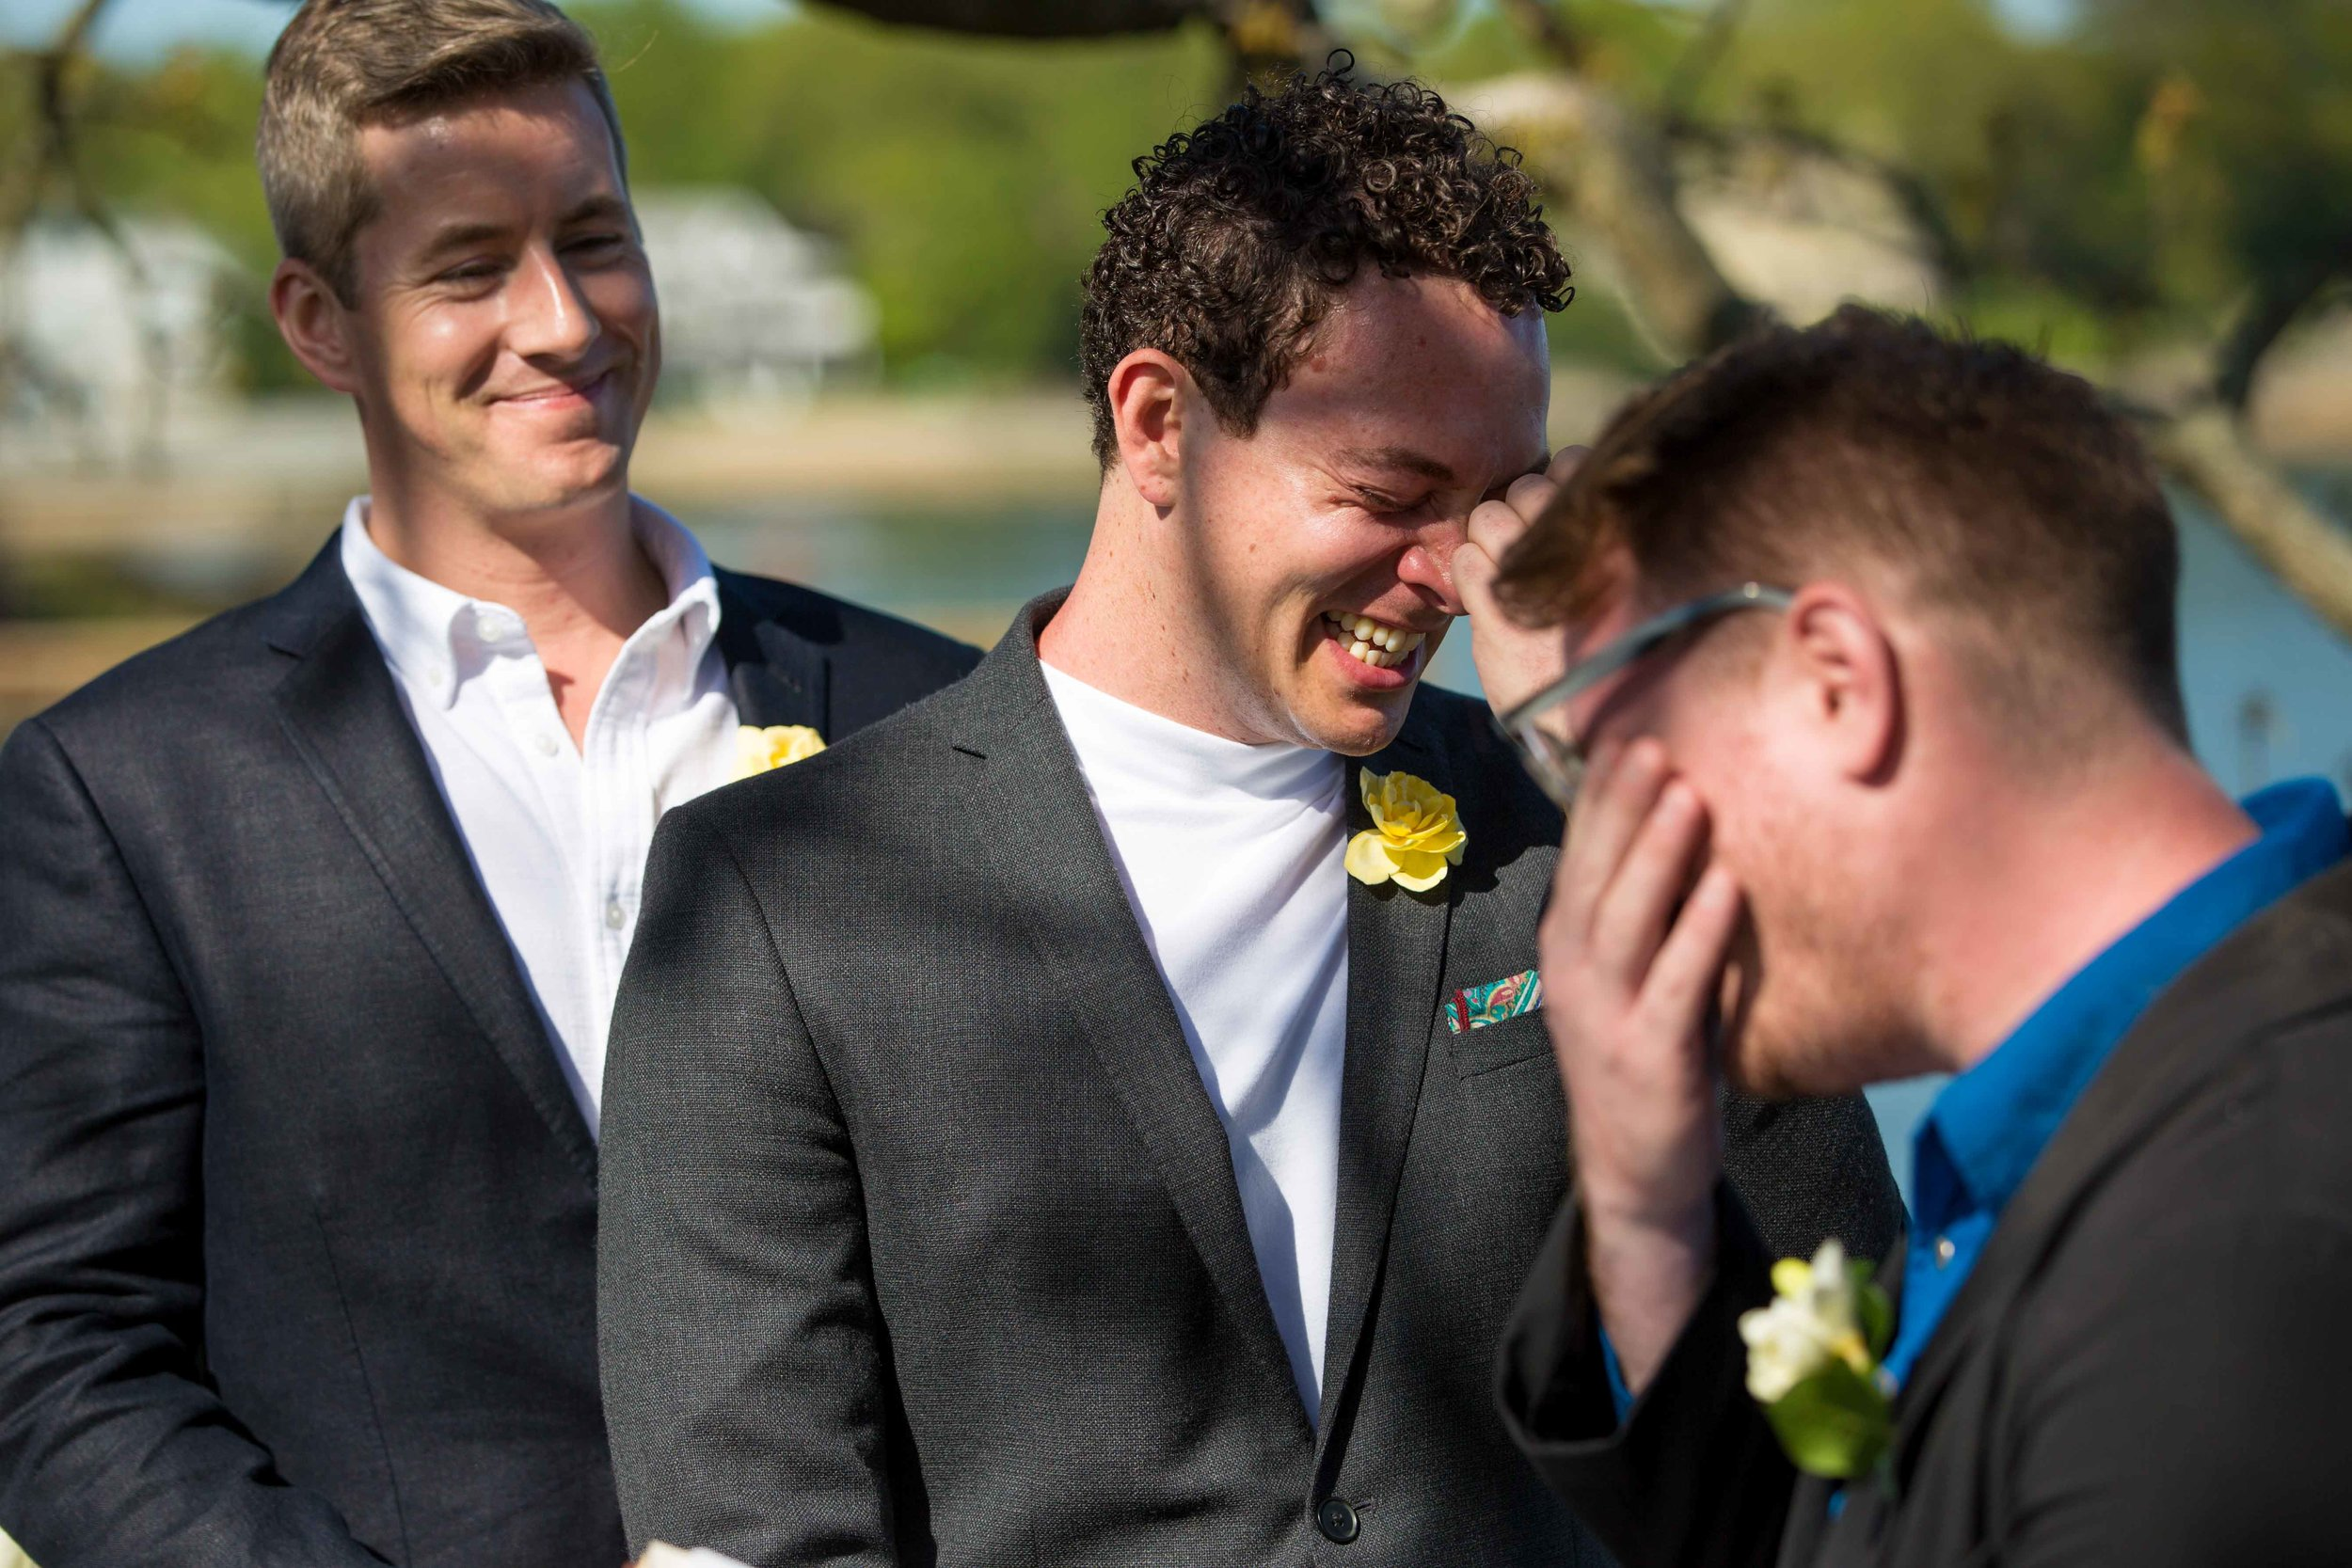 NYC Same Sex Wedding Photographer New York Gay Elopement